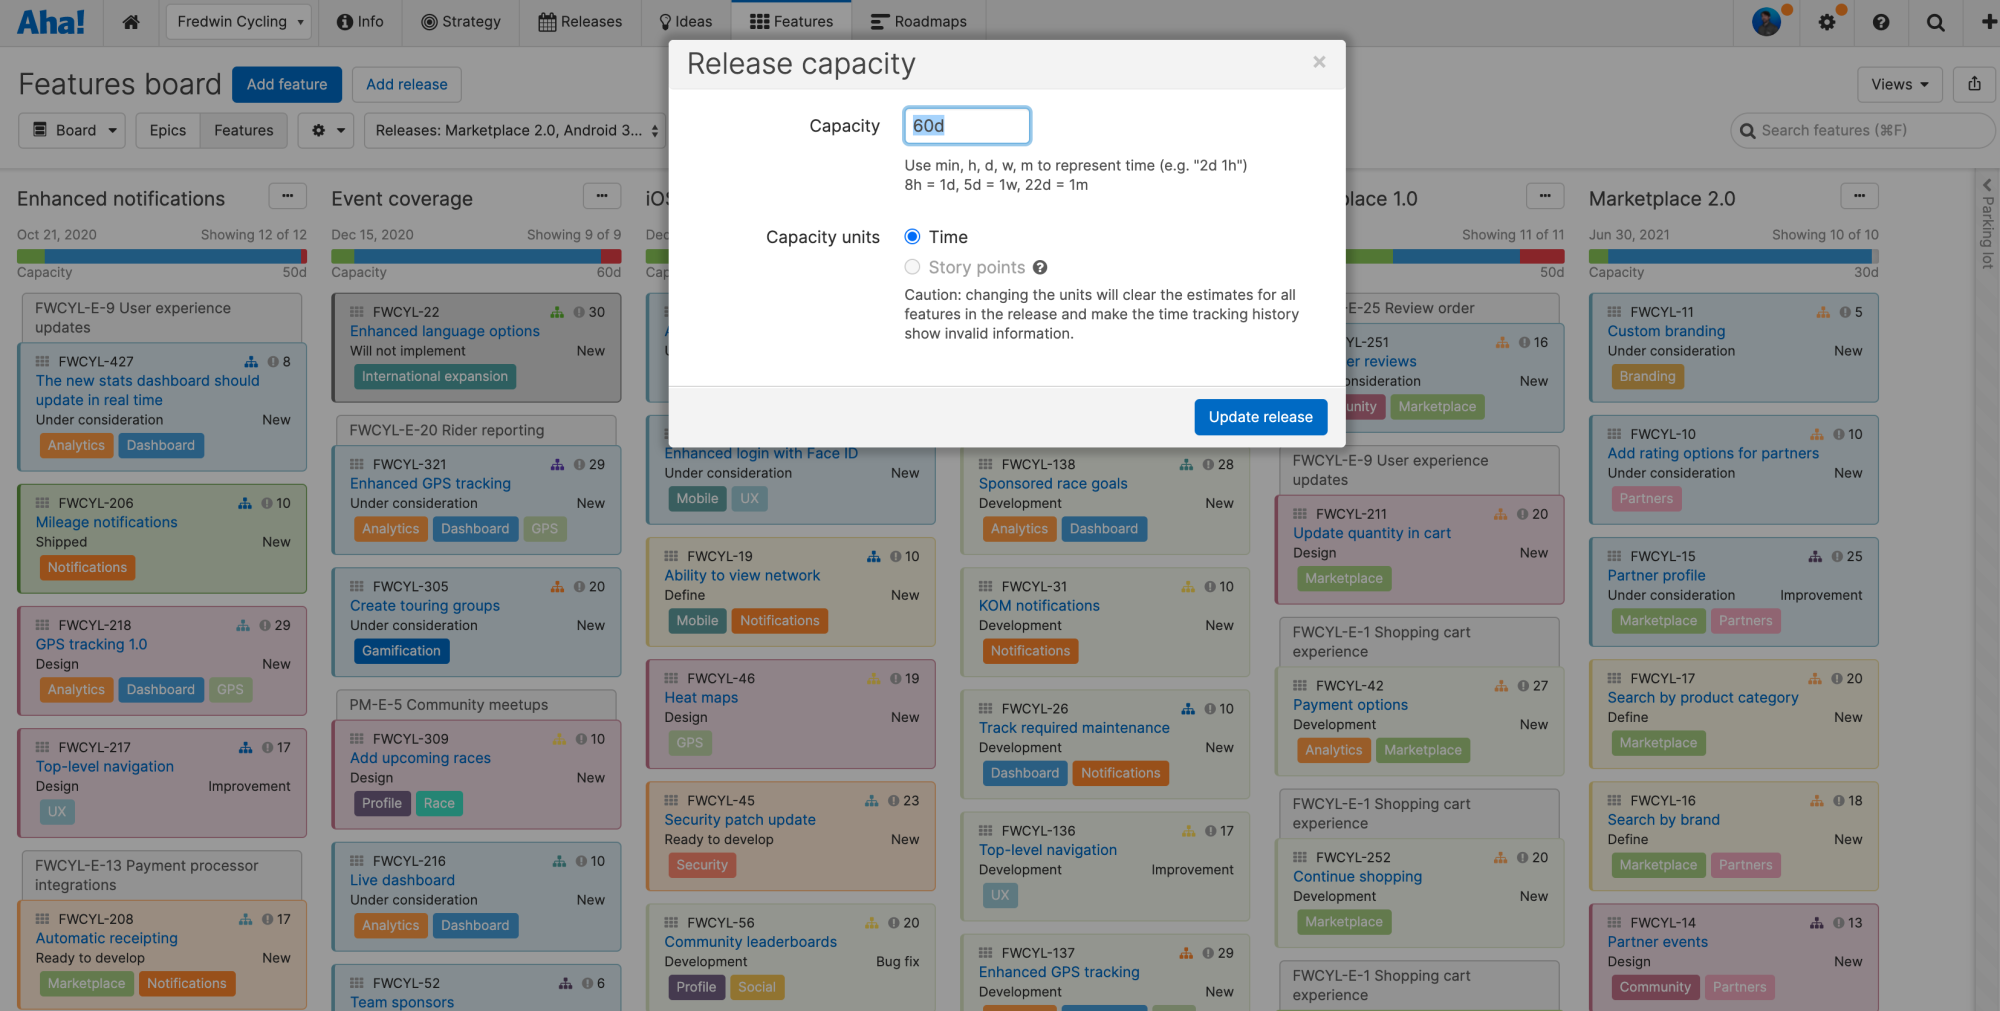 The release capacity modal in front of the features board